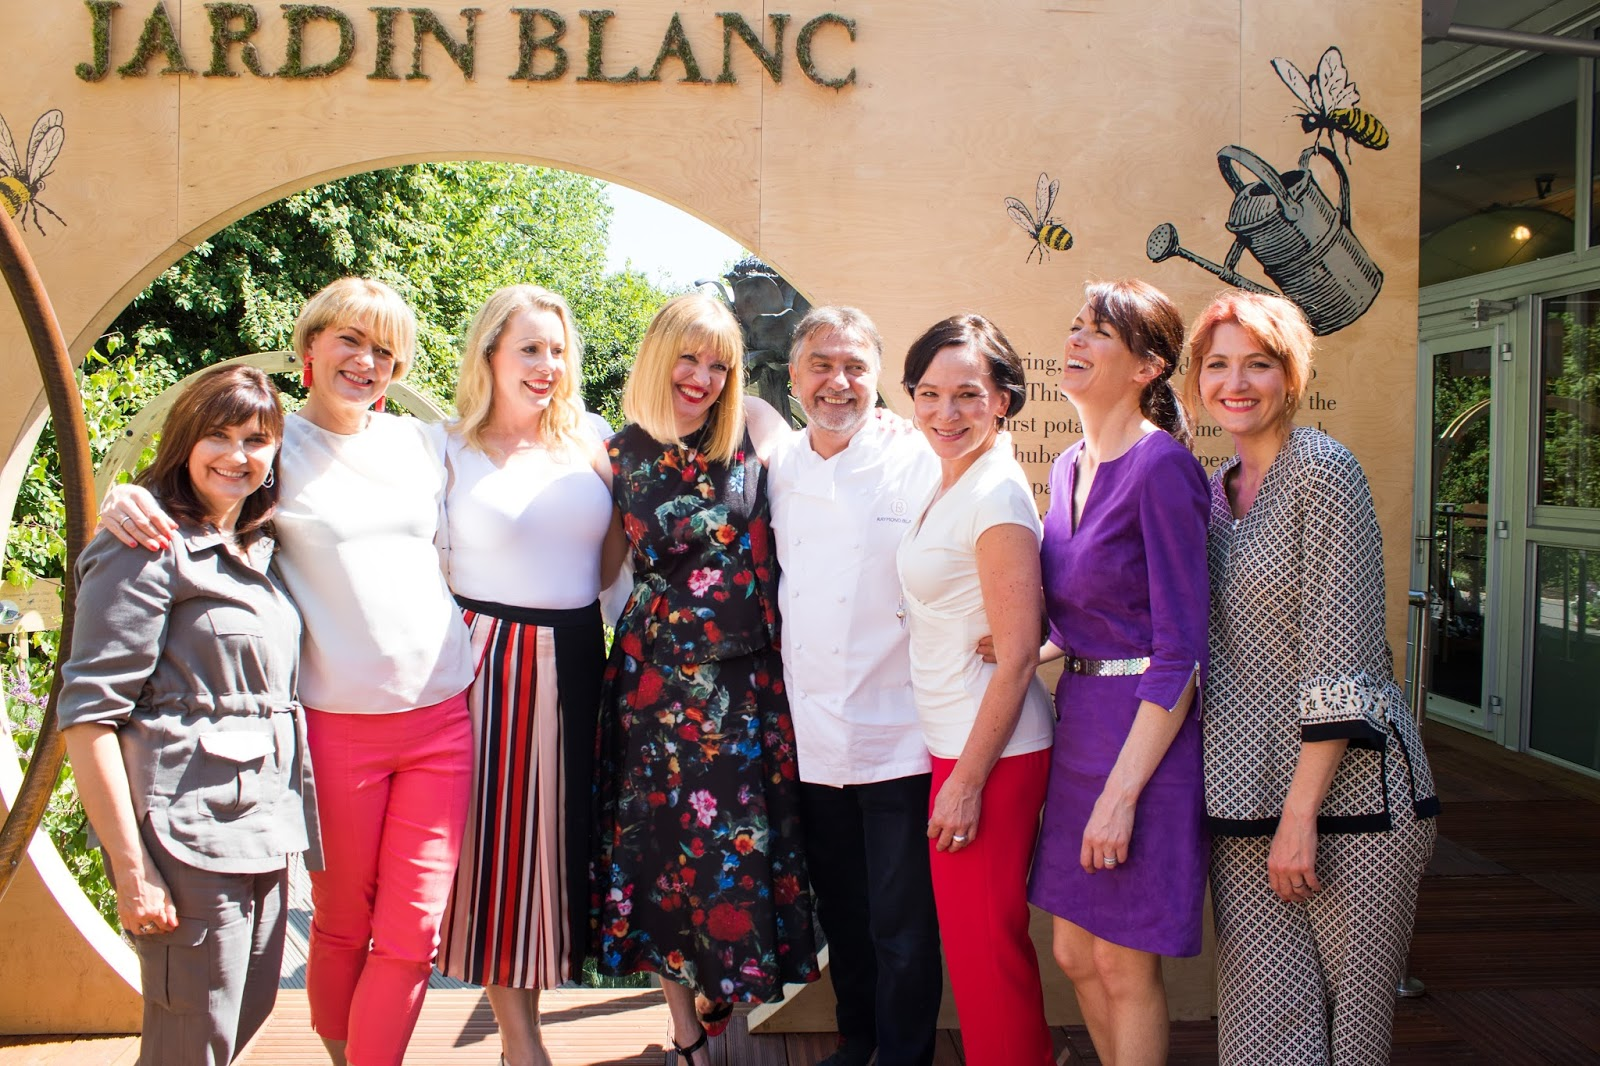 What Lizzy Loves, The Over 40 Collective and Raymond Blanc at The Chelsea Flower Show 2017